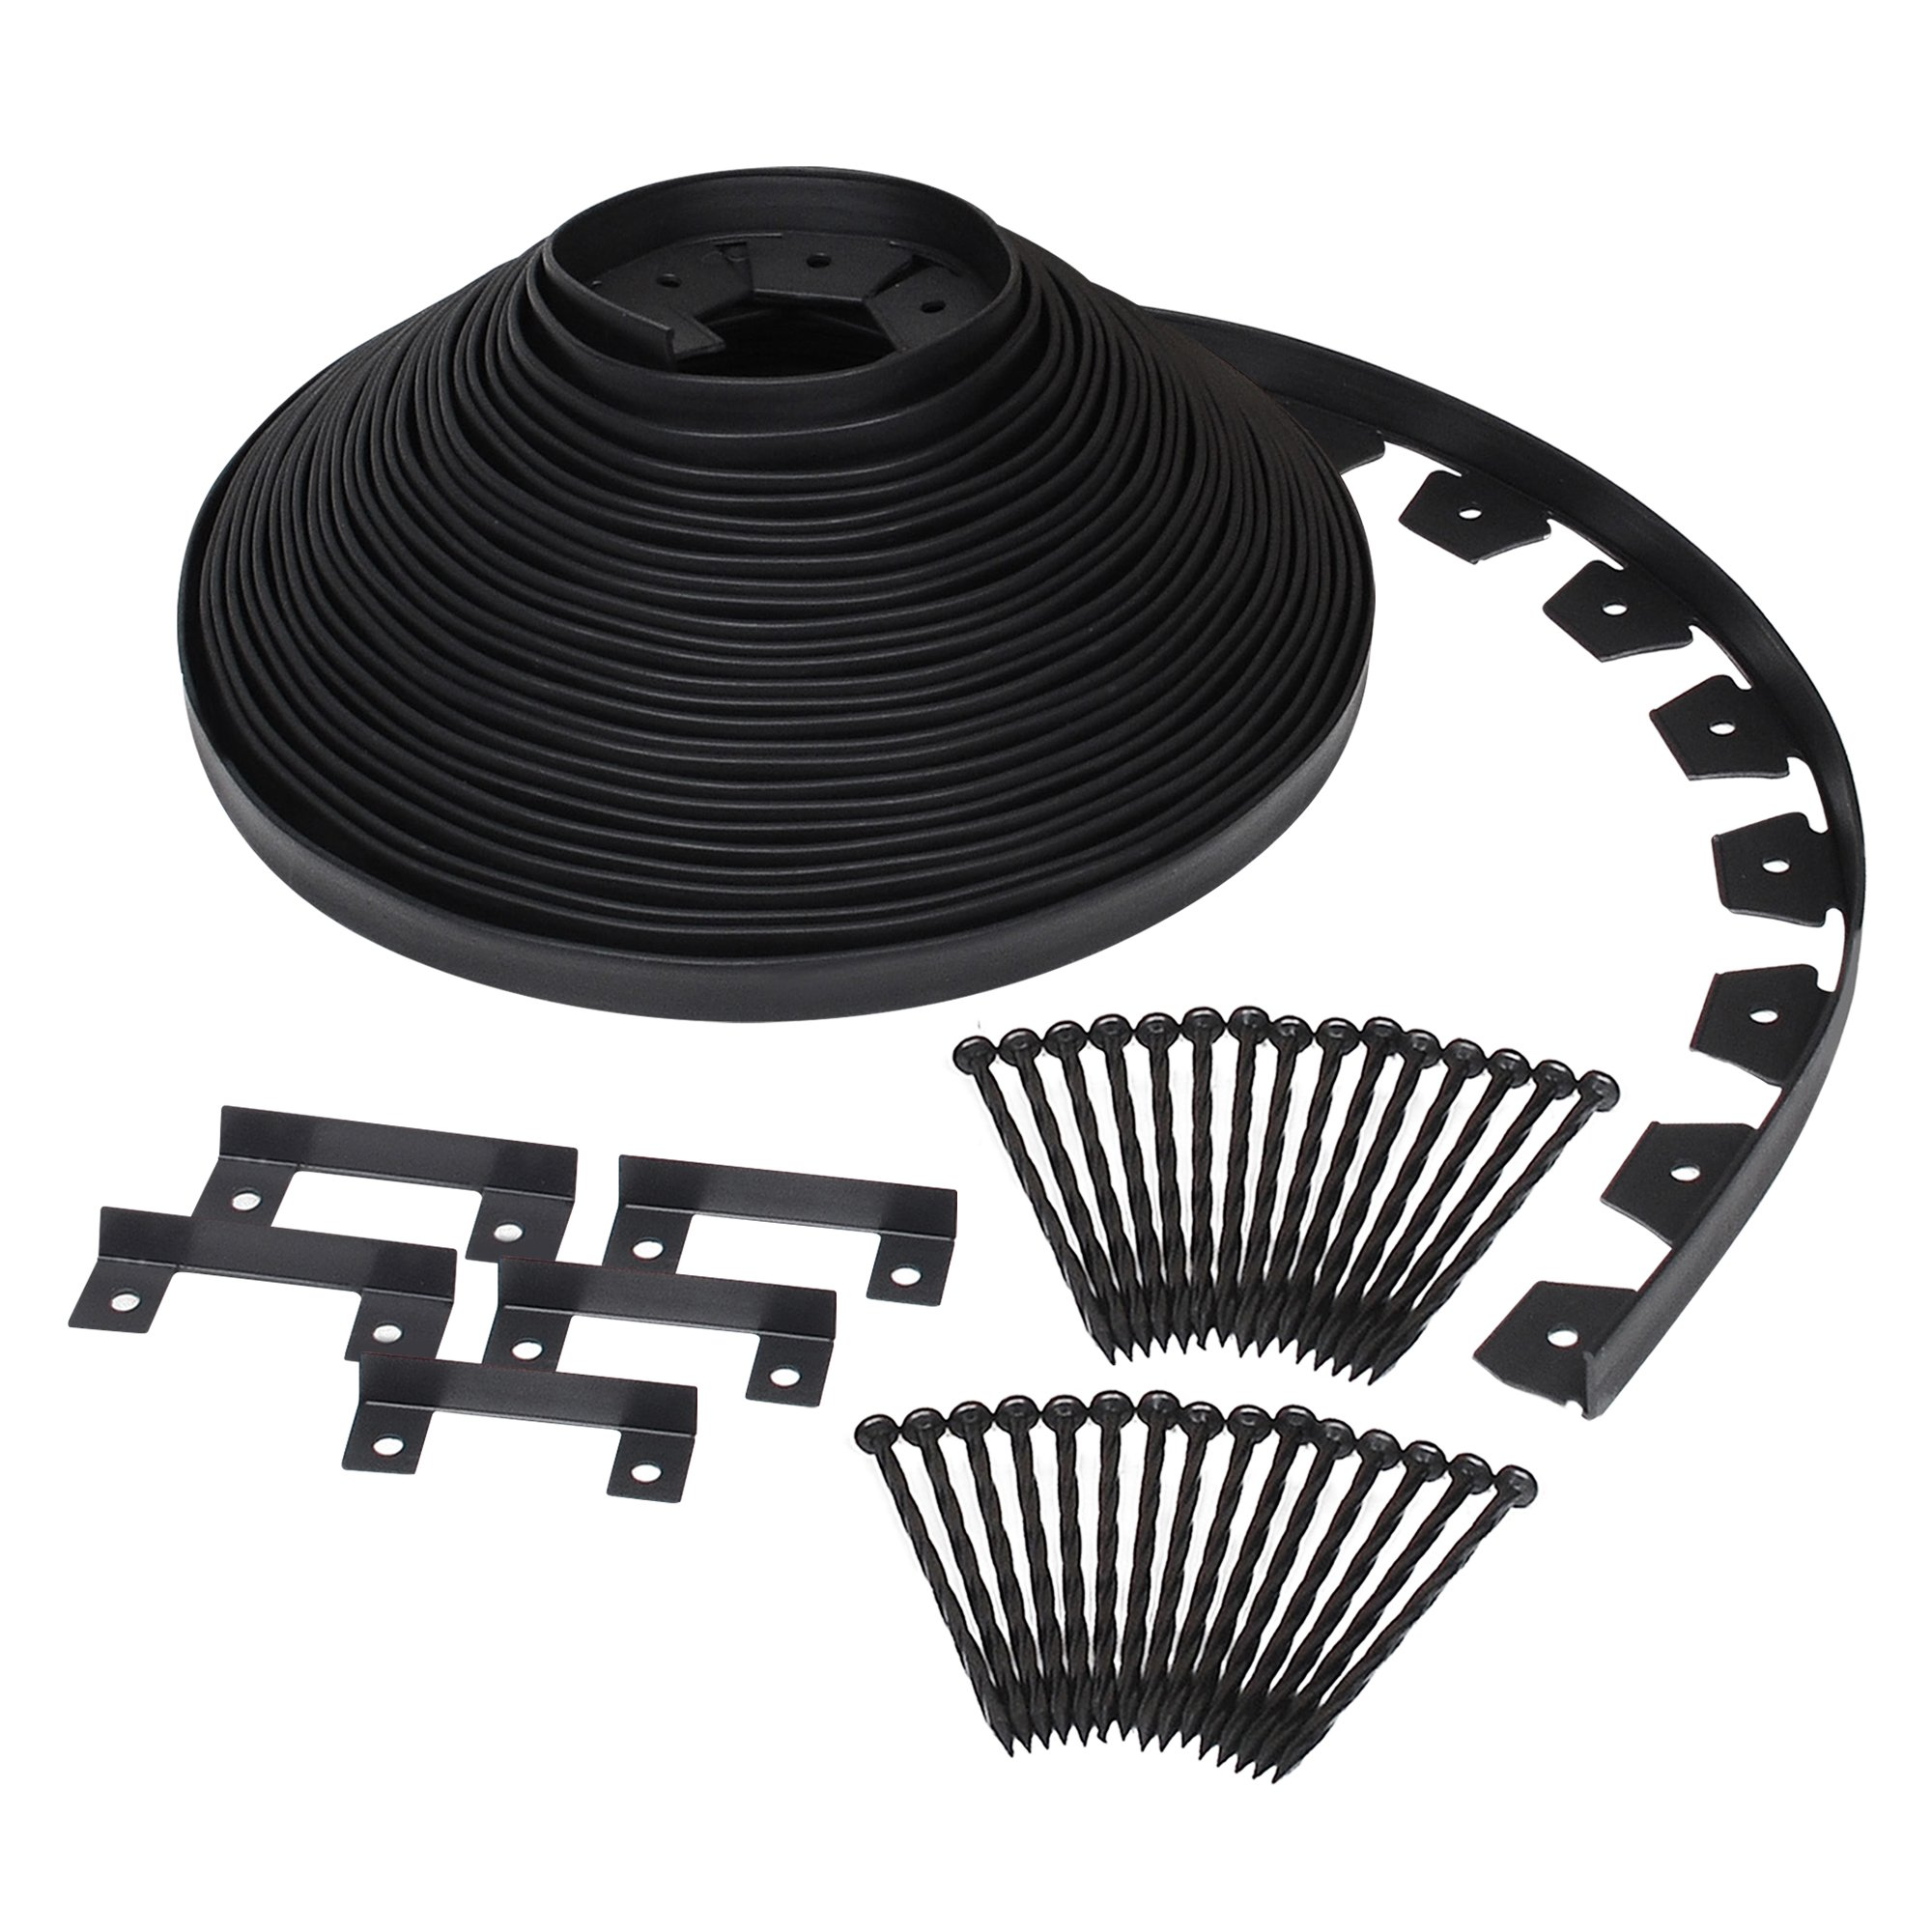 Dimex EasyFlex Plastic No-Dig Landscape Edging Kit, 100-Feet product image